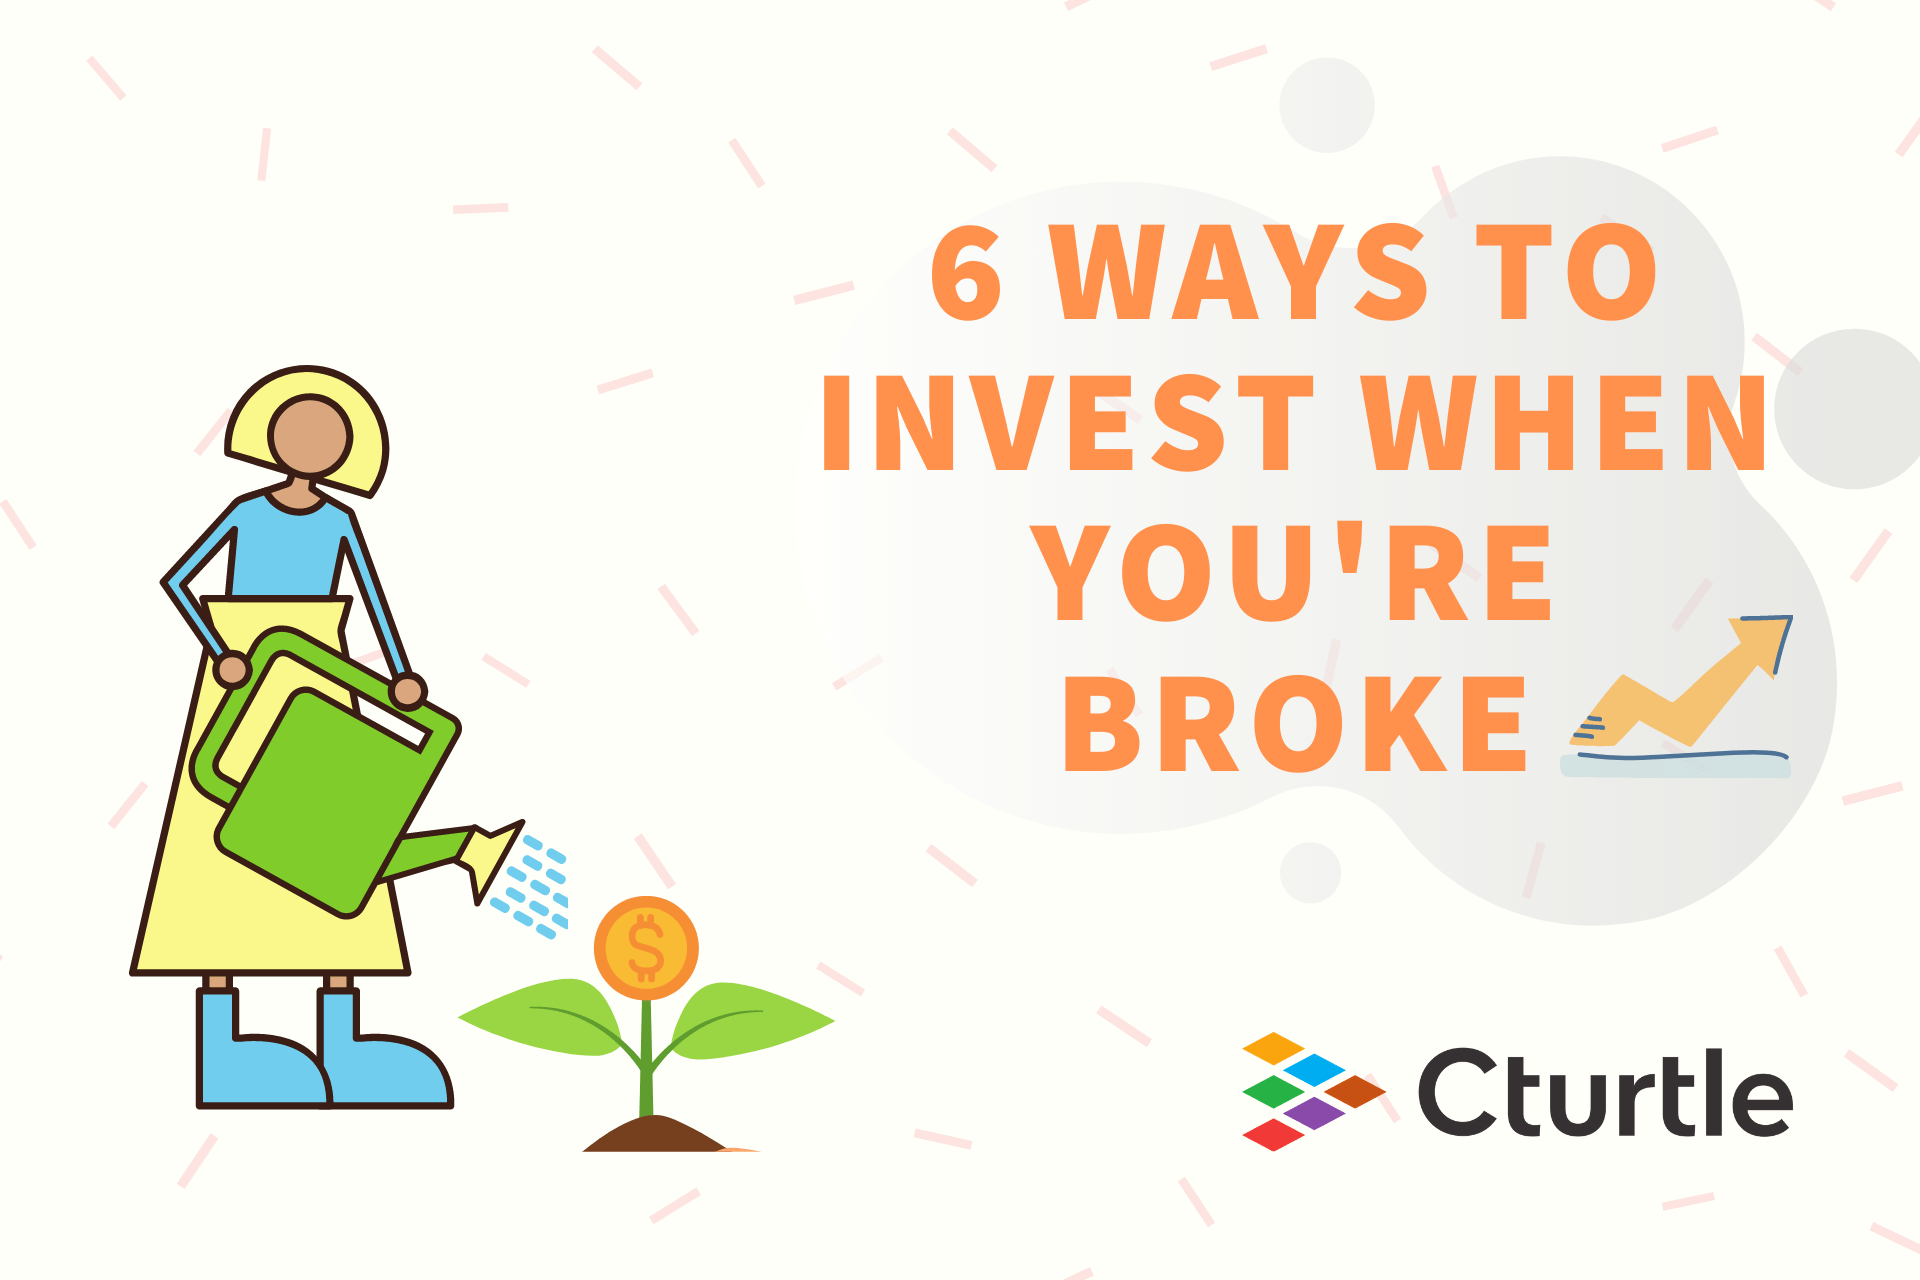 6 Ways to Invest When You're Broke